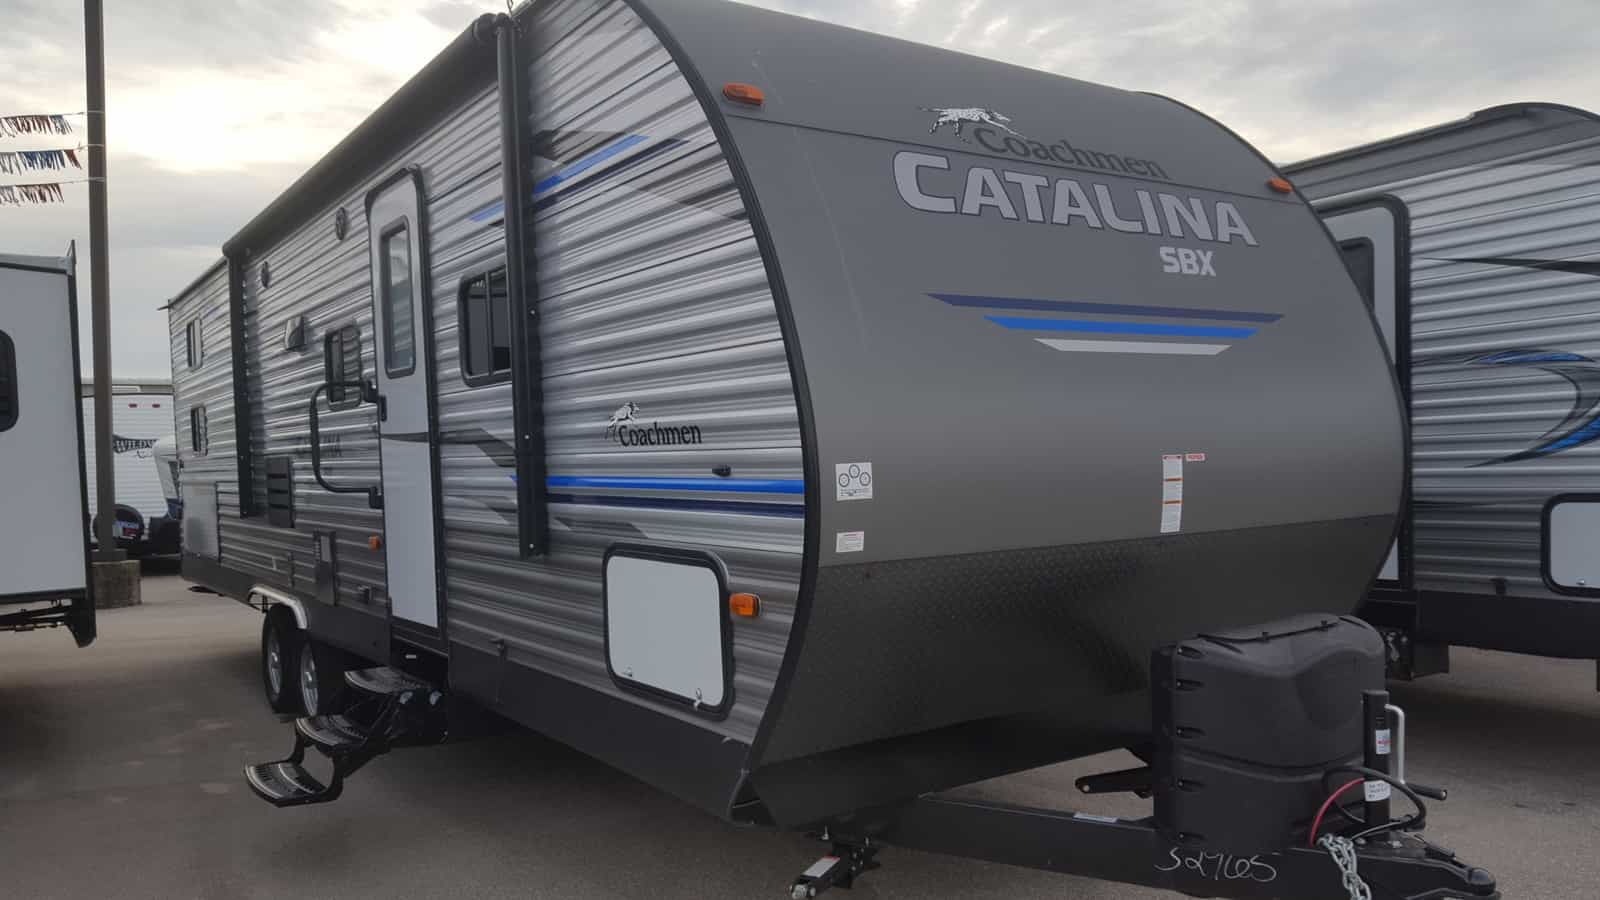 NEW 2019 Coachmen CATALINA SBX 291BHS - American RV